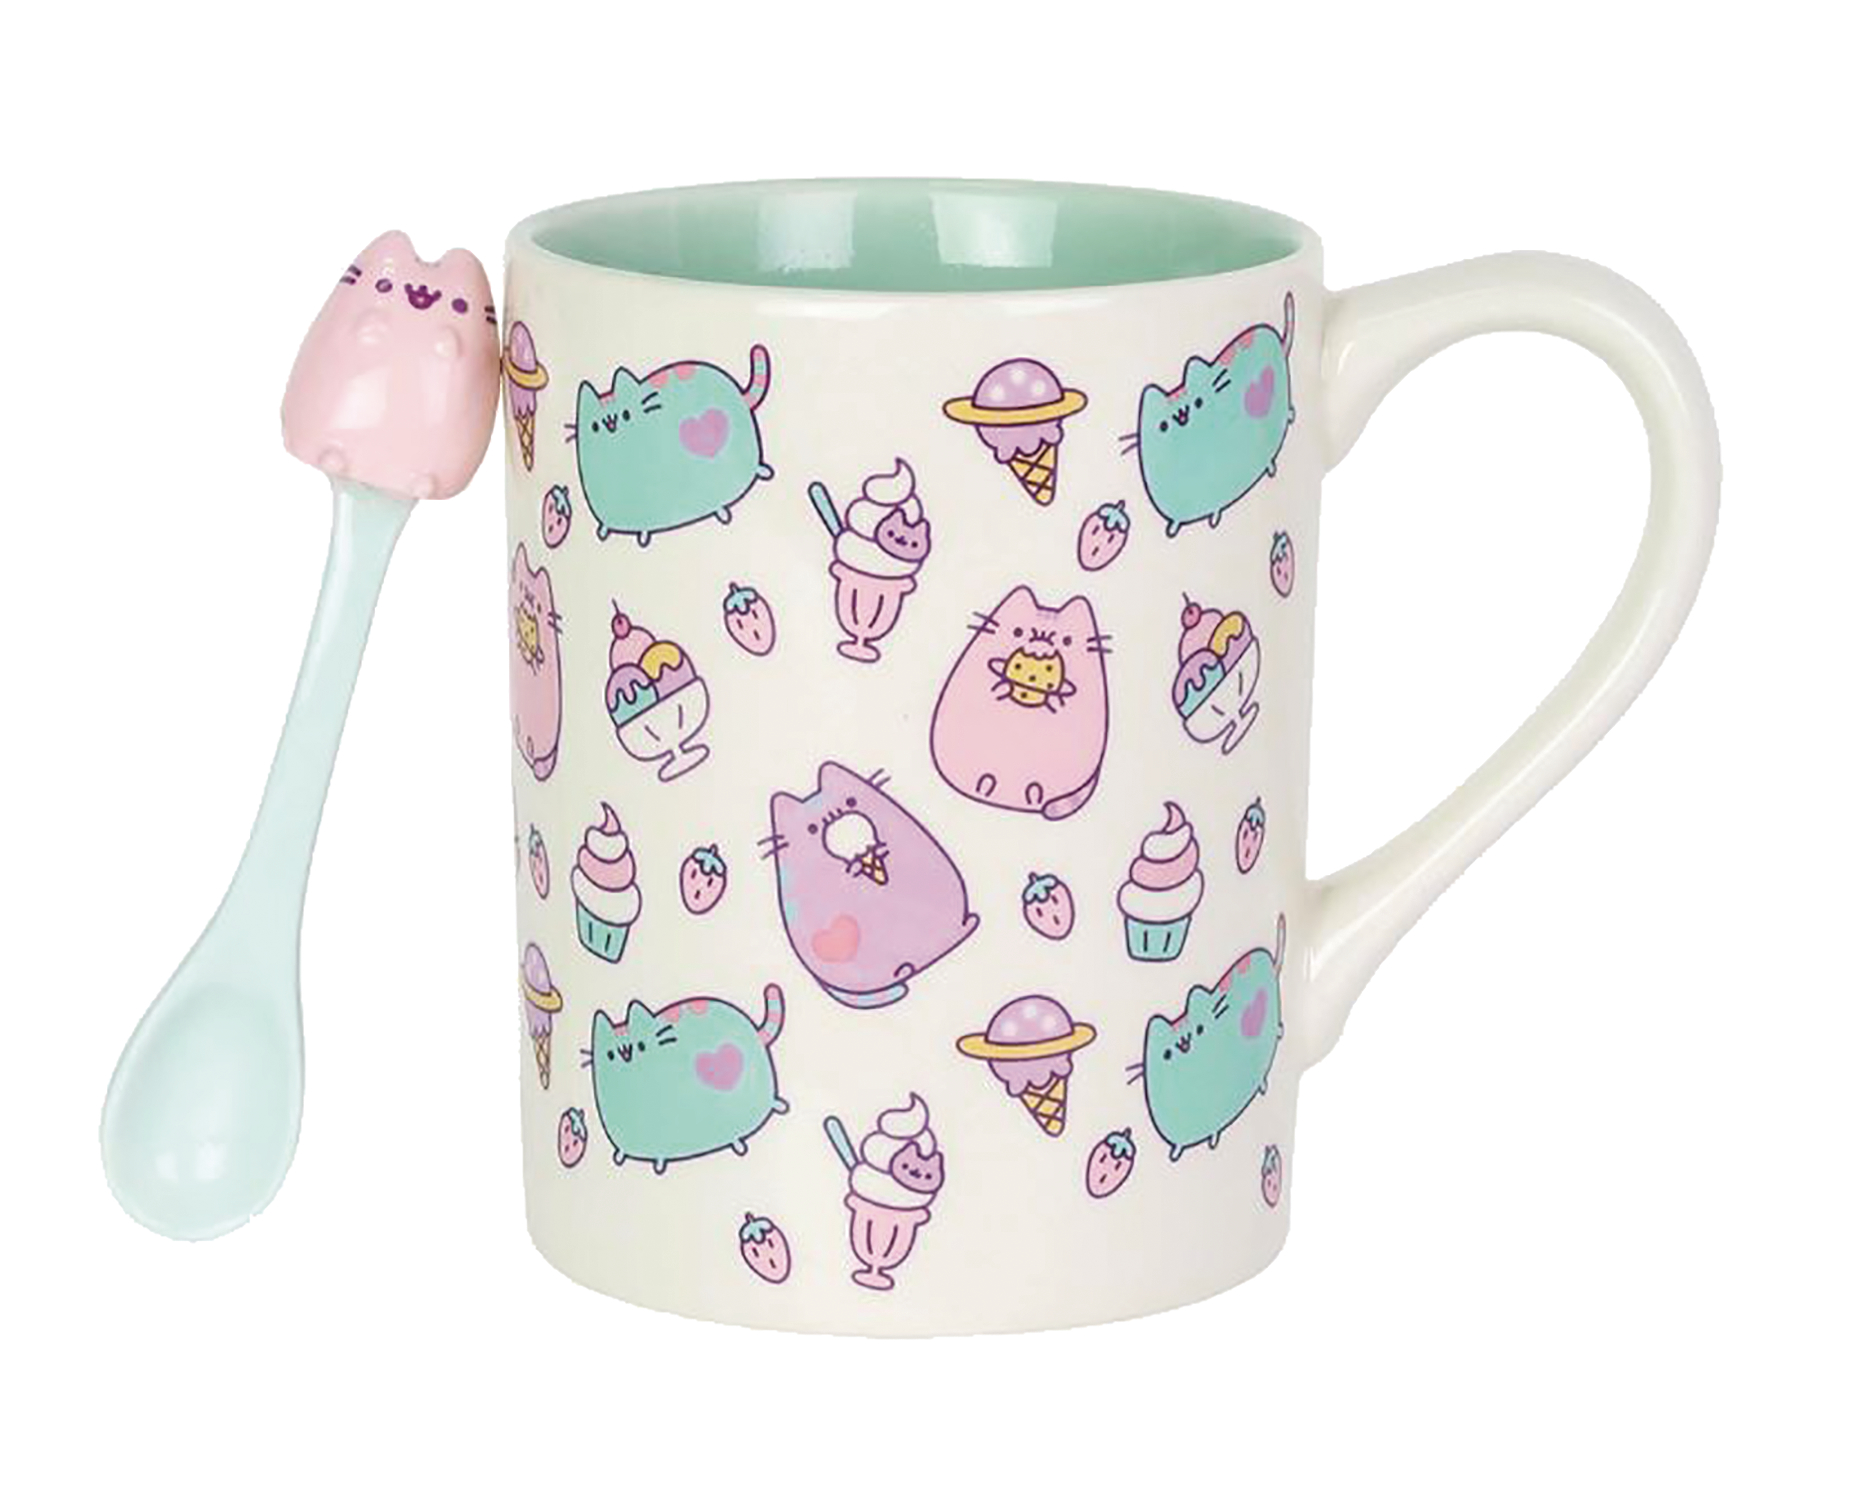 OUR NAME IS MUD PUSHEEN MUG WITH SPOON SET